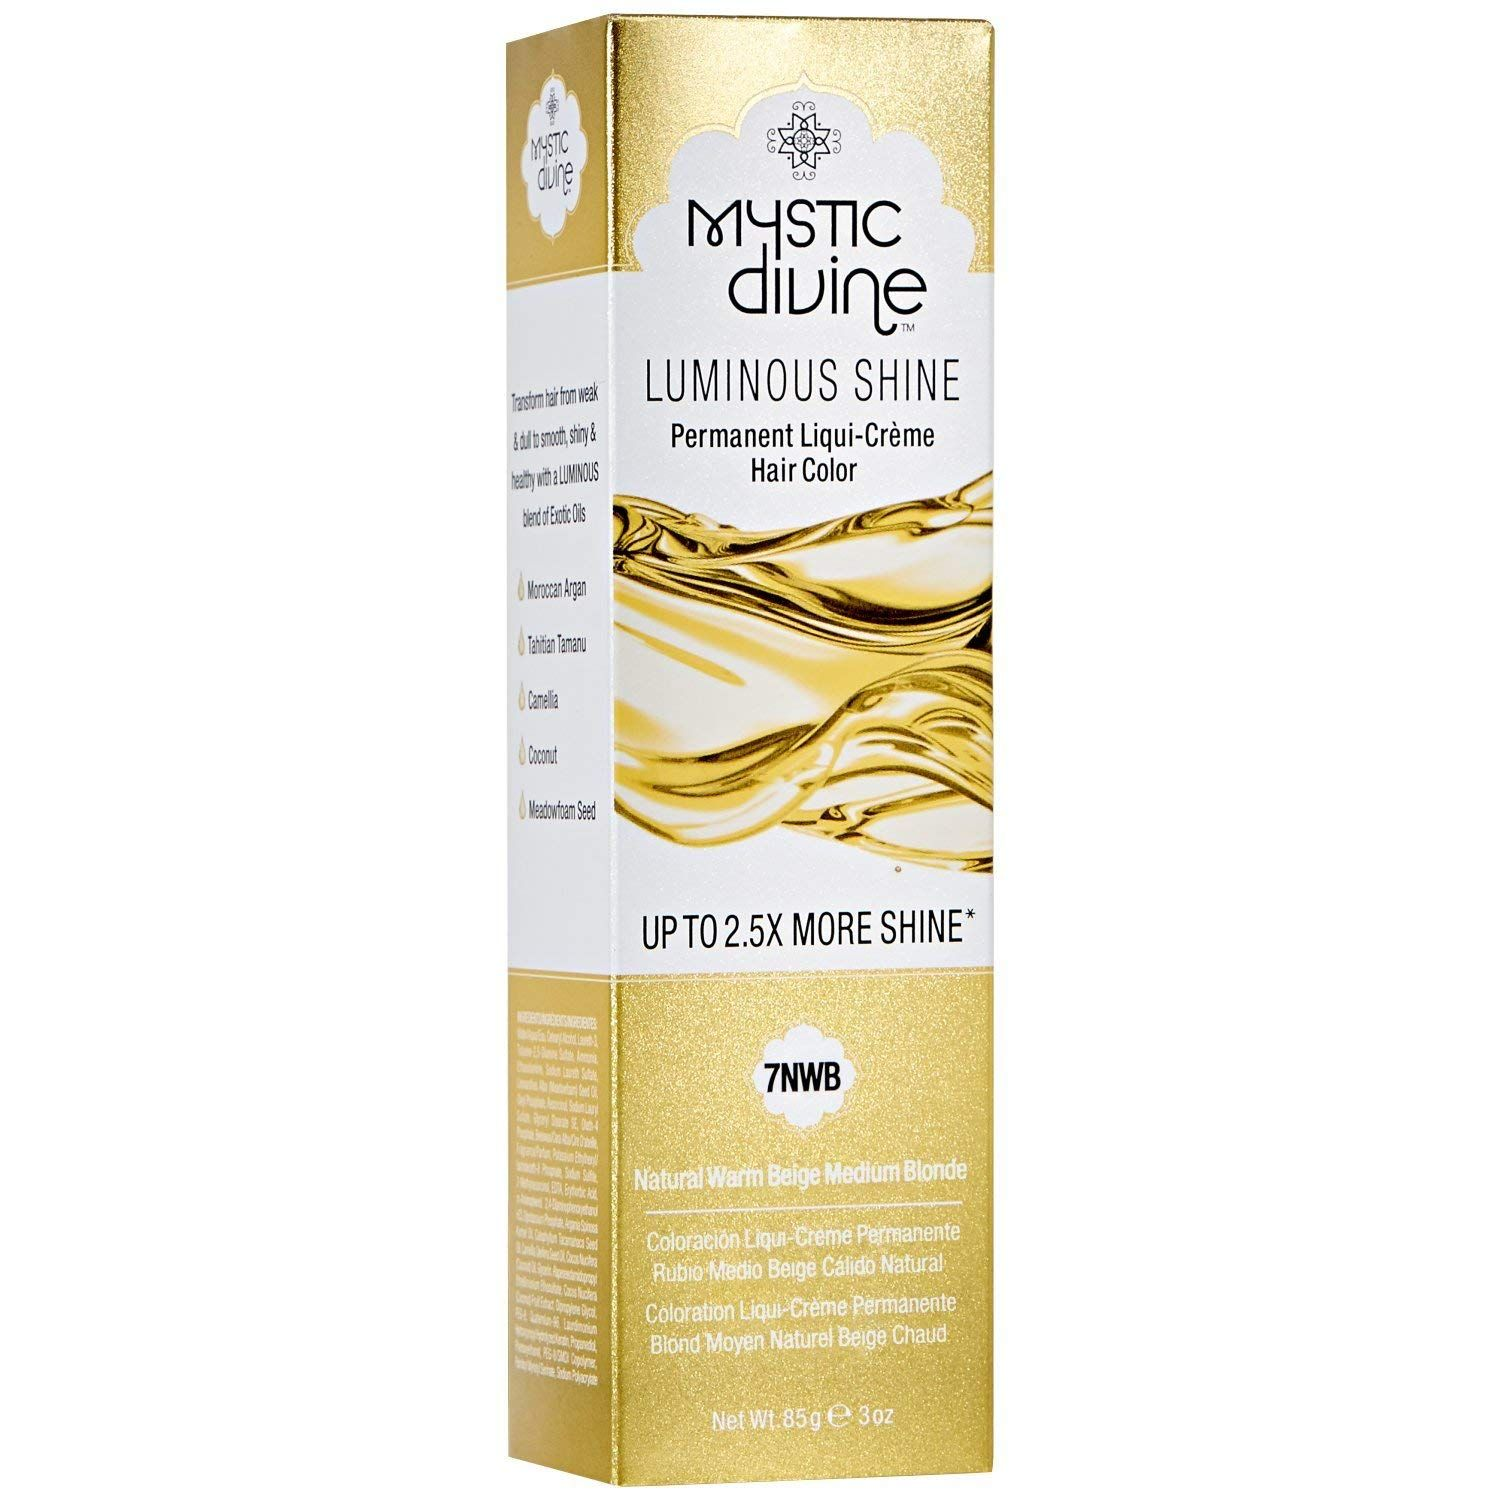 Mystic Divine 7NWB Natural Warm Beige Medium Blonde Liqui